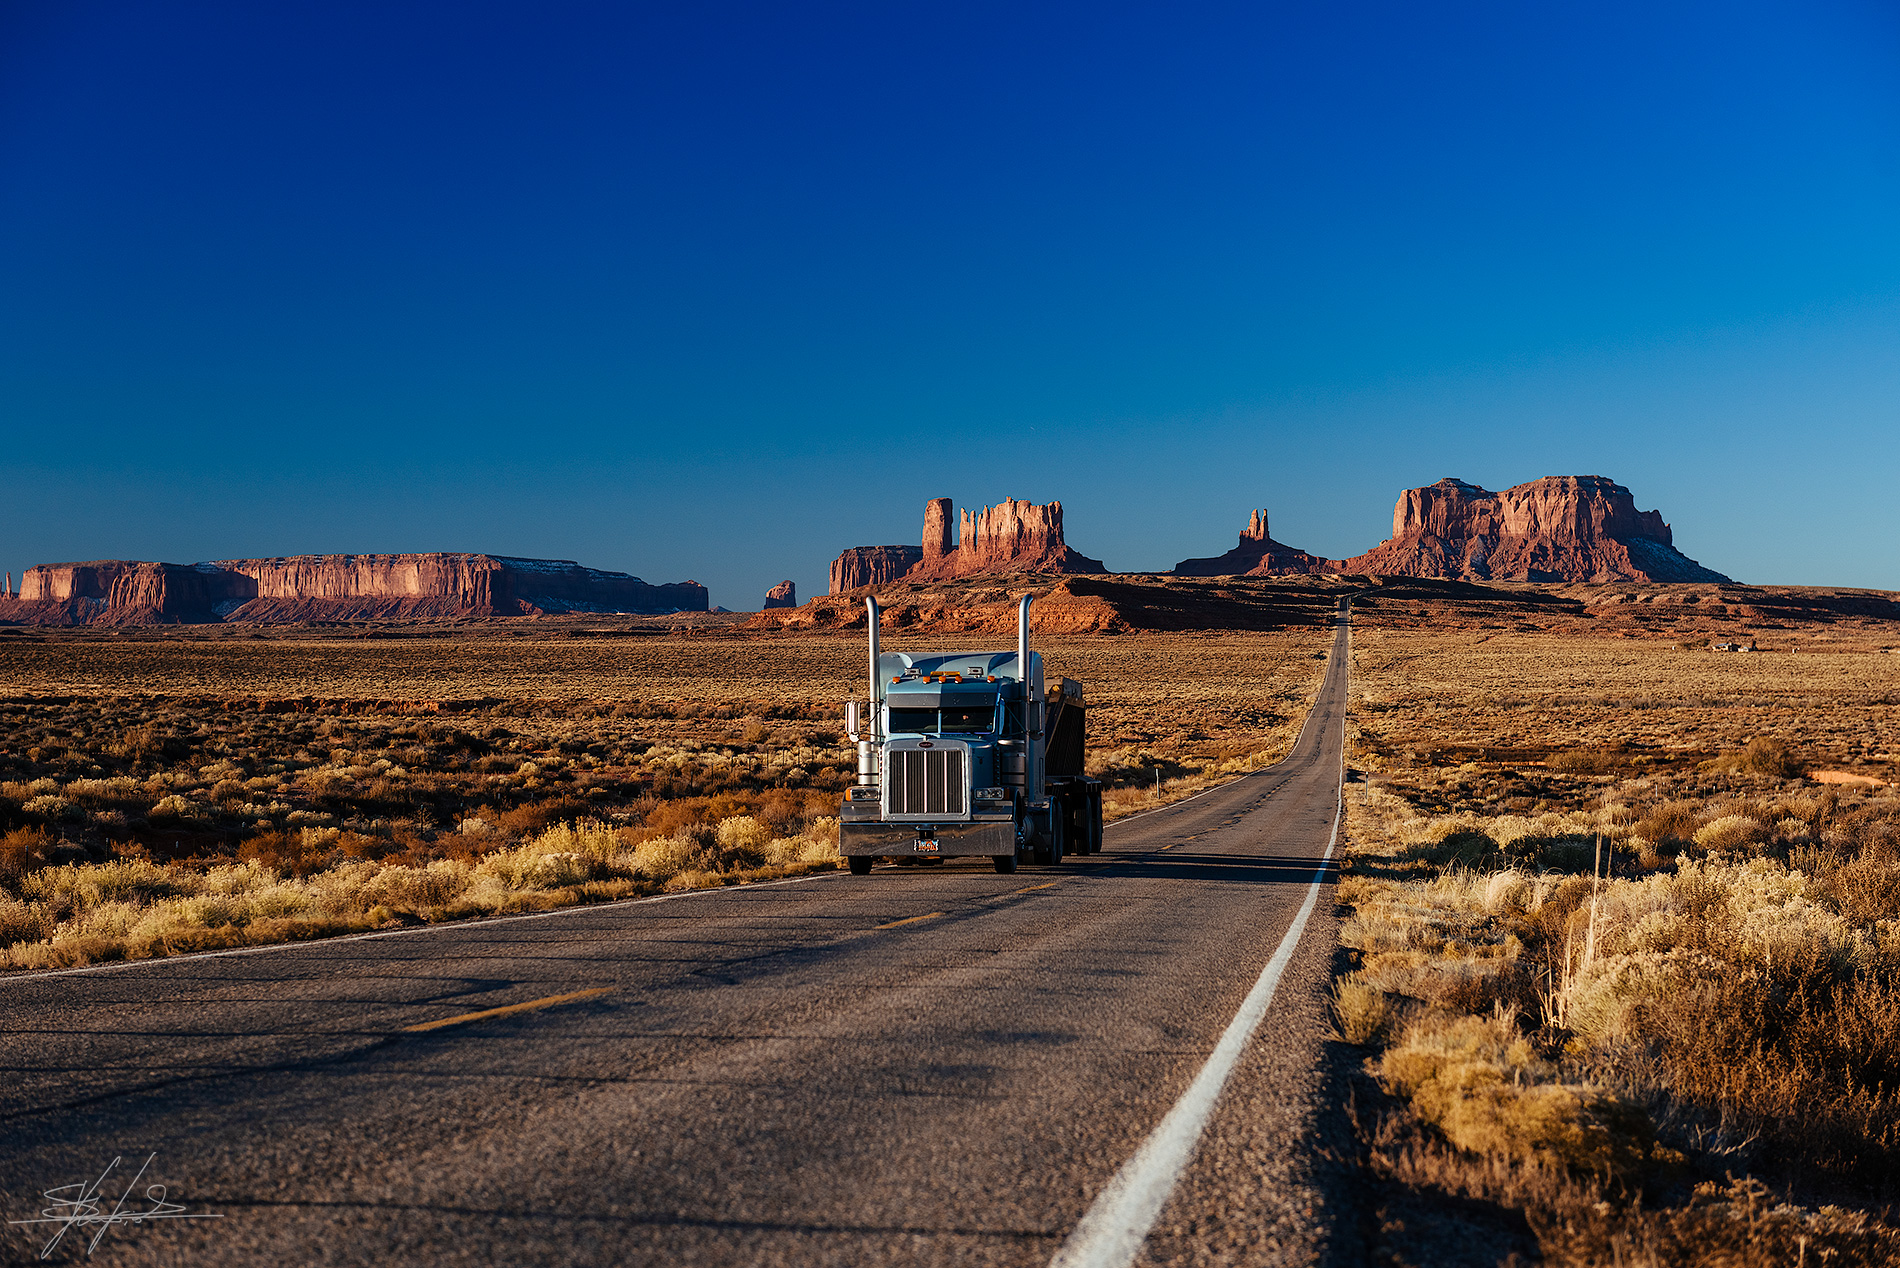 Postcard from the Monument Valley